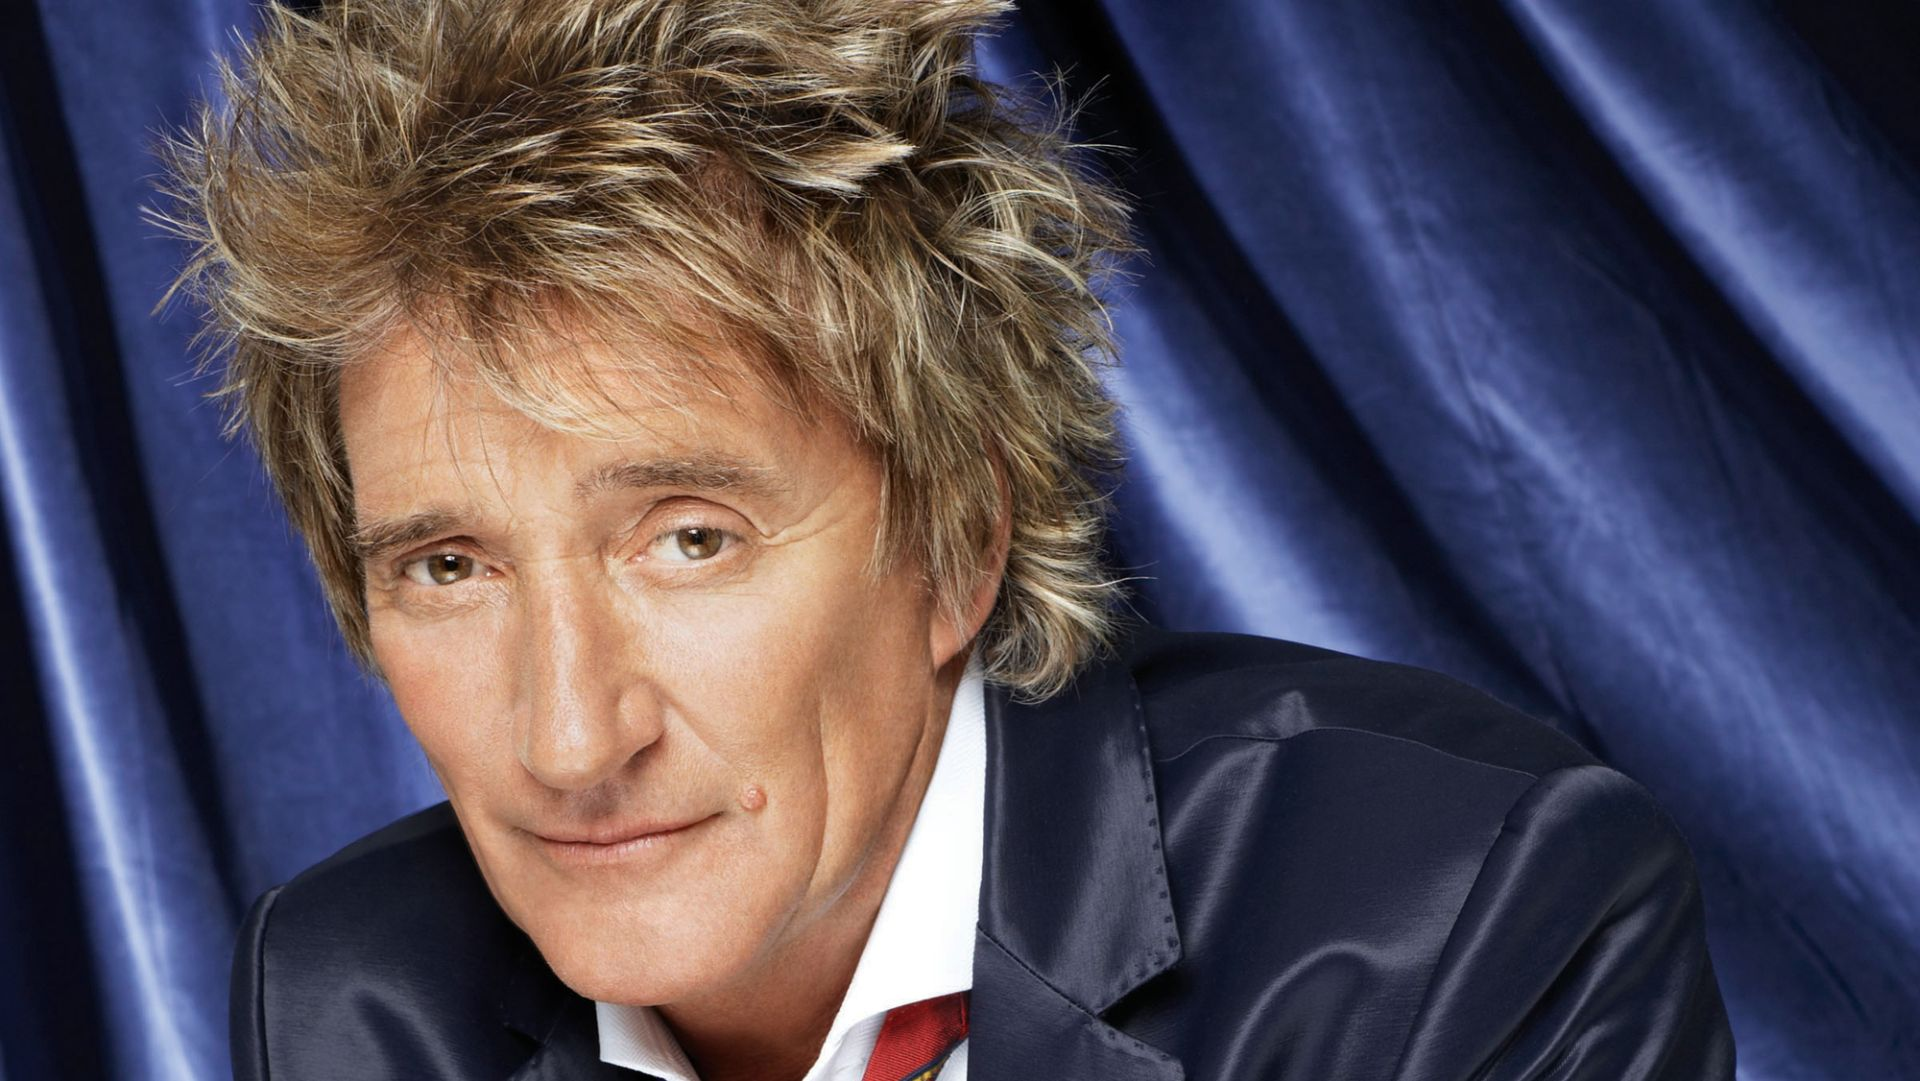 Rod-Stewart-HD-Wallpaper.jpg